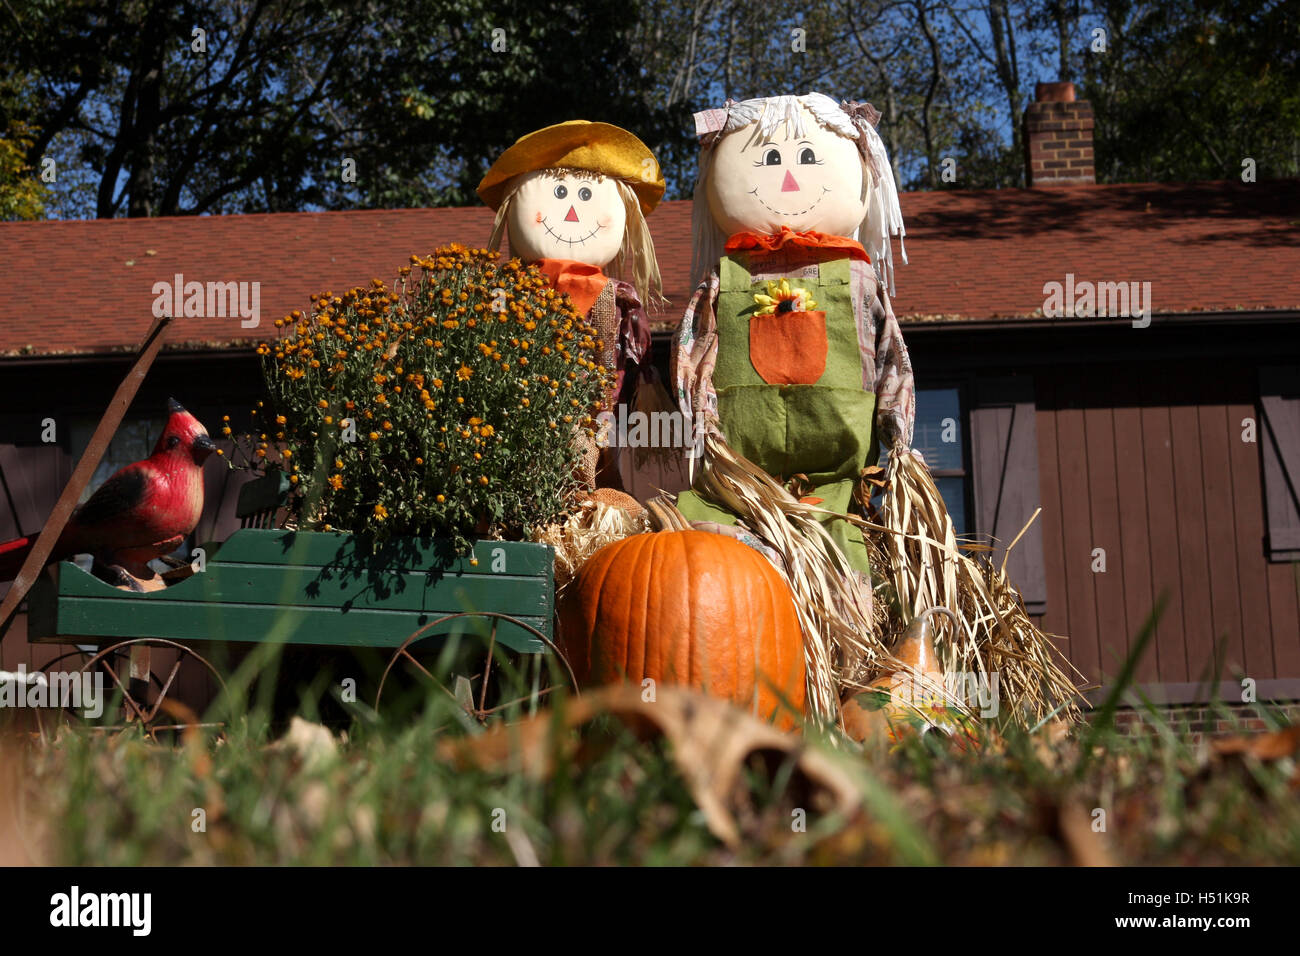 Outdoor Fall Decoration With Scarecrows And Pumpkin Stock Photo